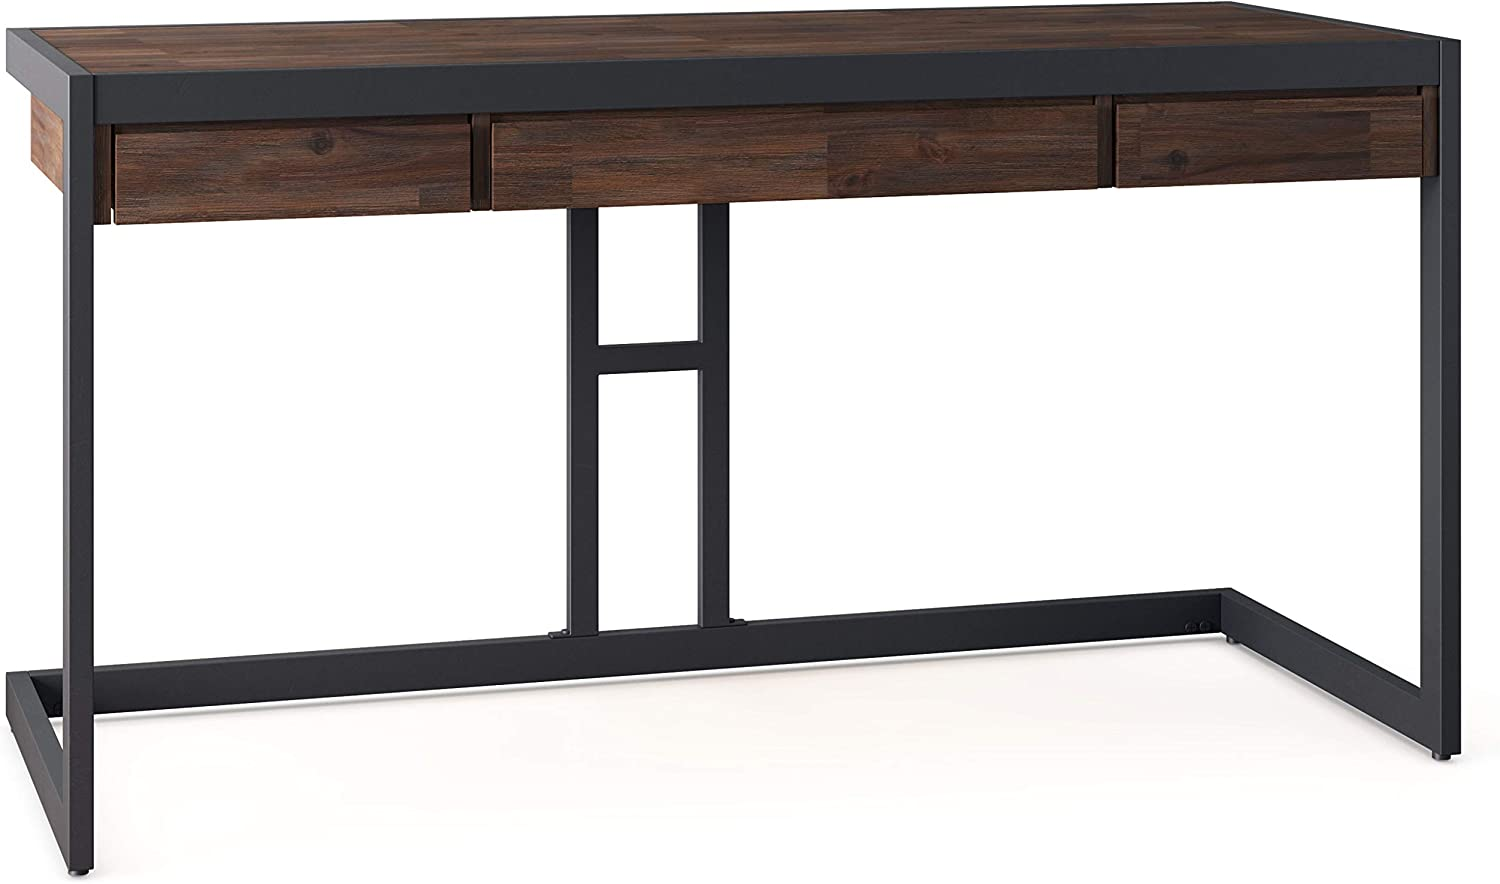 SIMPLIHOME Erina SOLID WOOD and Metal Modern Industrial 60 inch Wide Home Office Desk, Writing Table, Workstation, Study Table Furniture in Distressed Charcoal Brown with 2 Drawerss